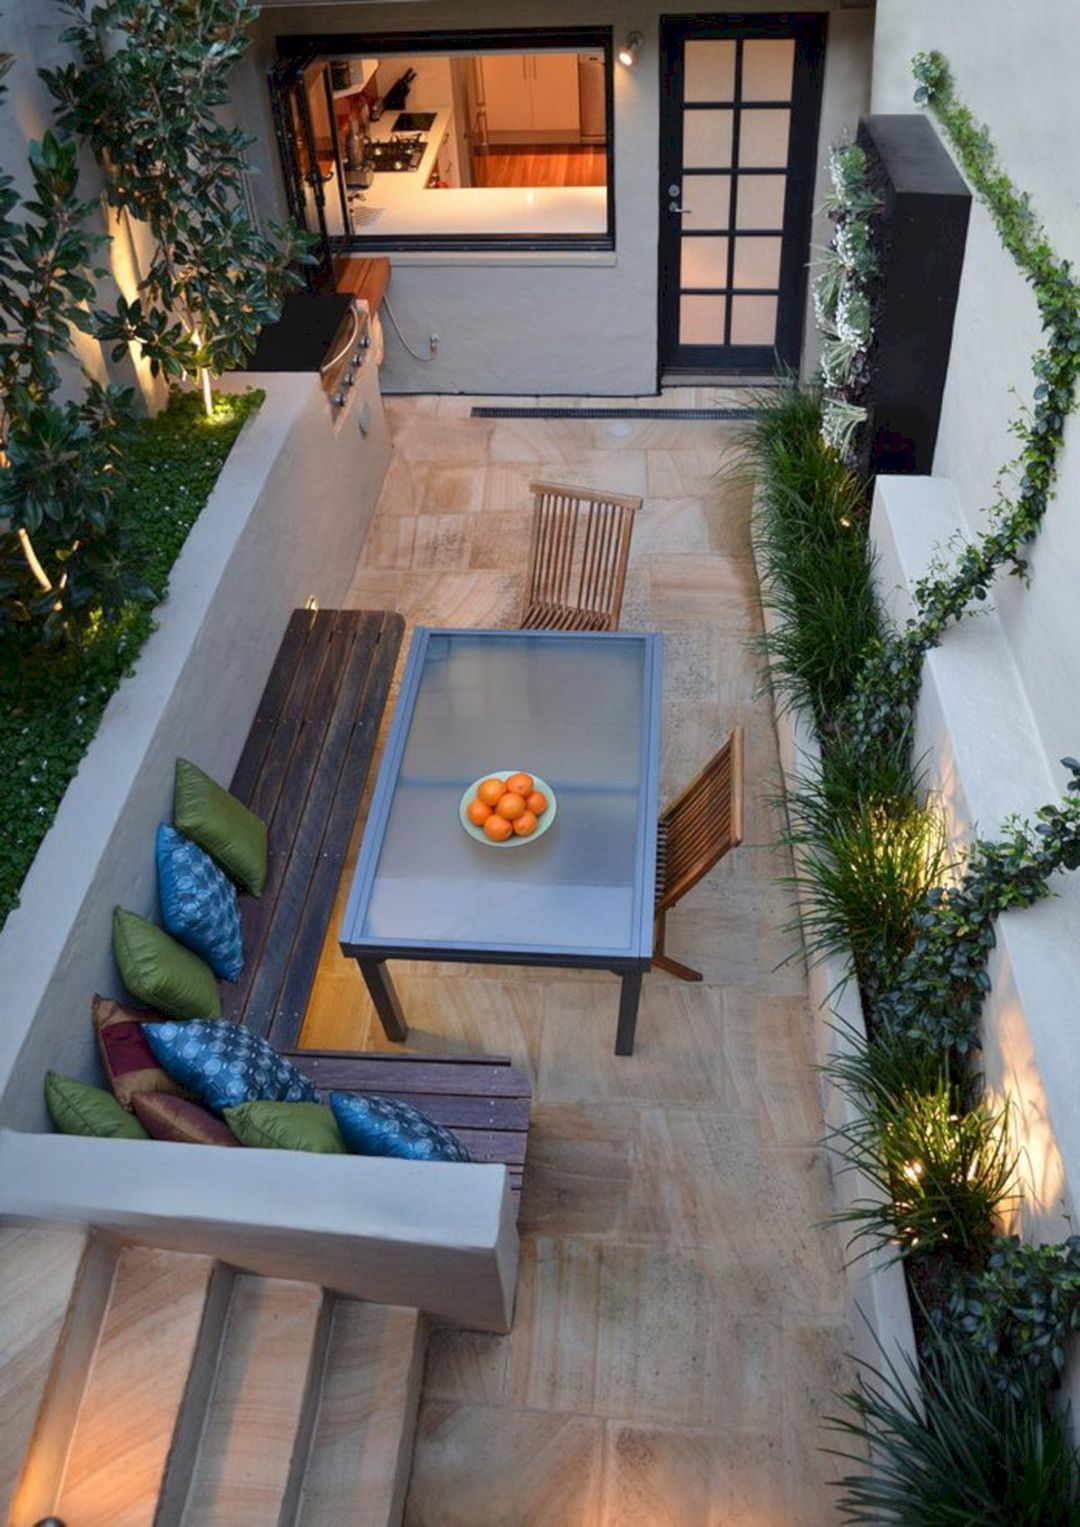 35 Marvelous Small Outdoor Patio Ideas On A Budget Dexorate Small Outdoor Patios Small Patio Design Indoor Courtyard